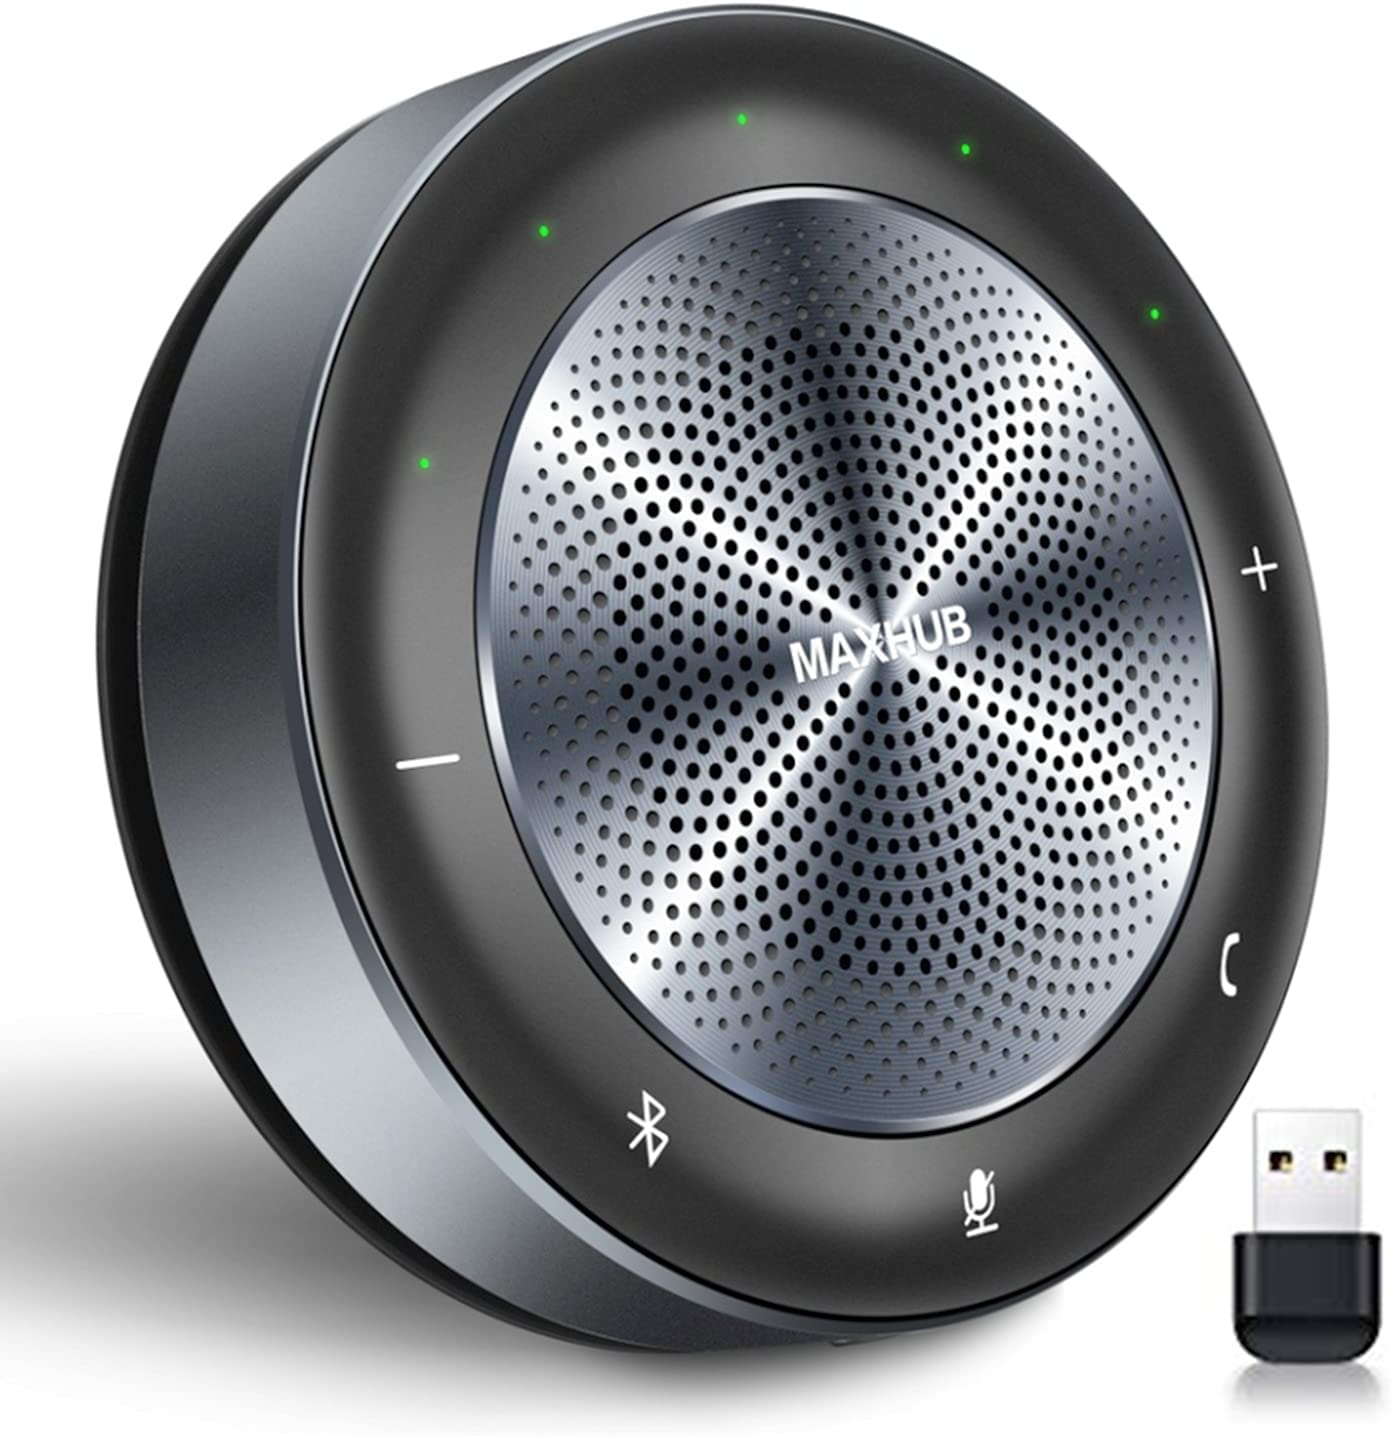 Bluetooth Speakerphone-MAXHUB BM21 6 Microphones 360°Voice Pick Up Noise Reduction Wireless Charging 8 Hour Call Time for 6-10 People Business Conference Phone Portable for Holding Meetings Anywhere : Office Products